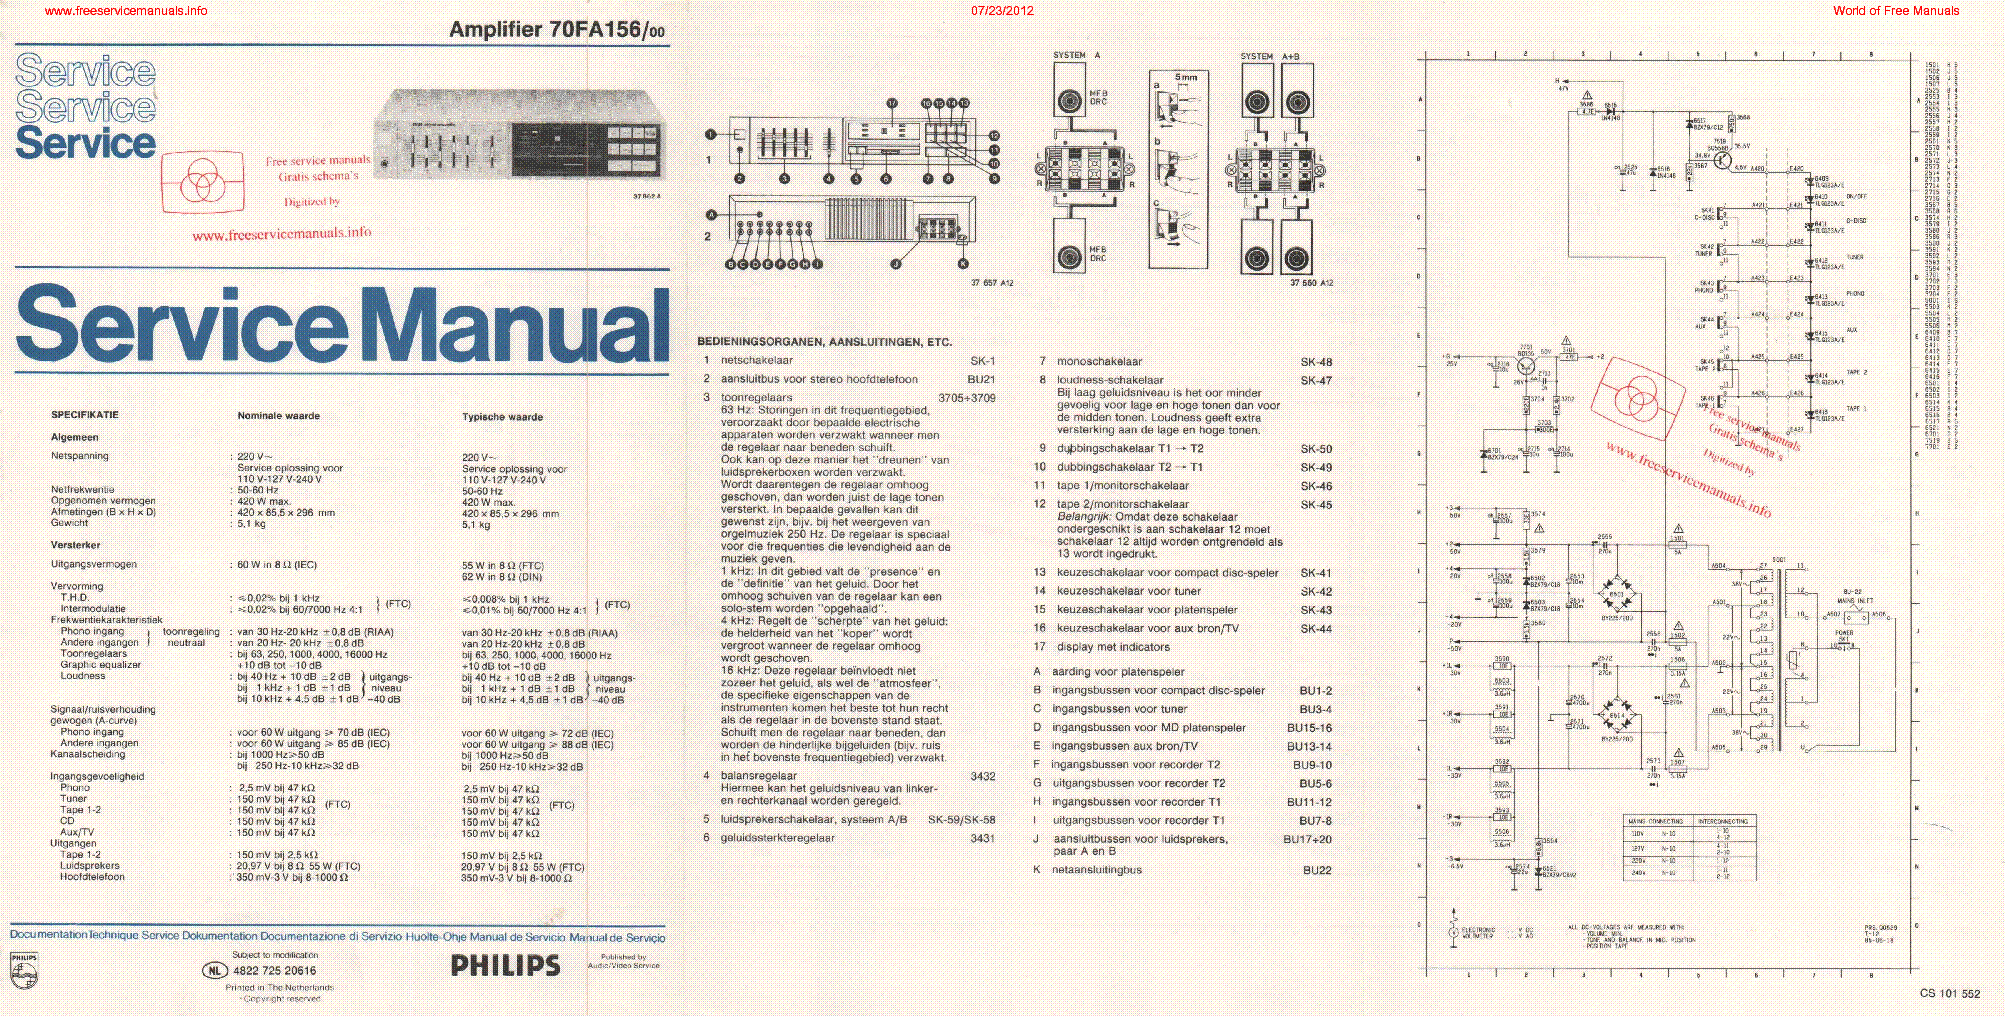 Philips FWM572 Series Service Manual Philips